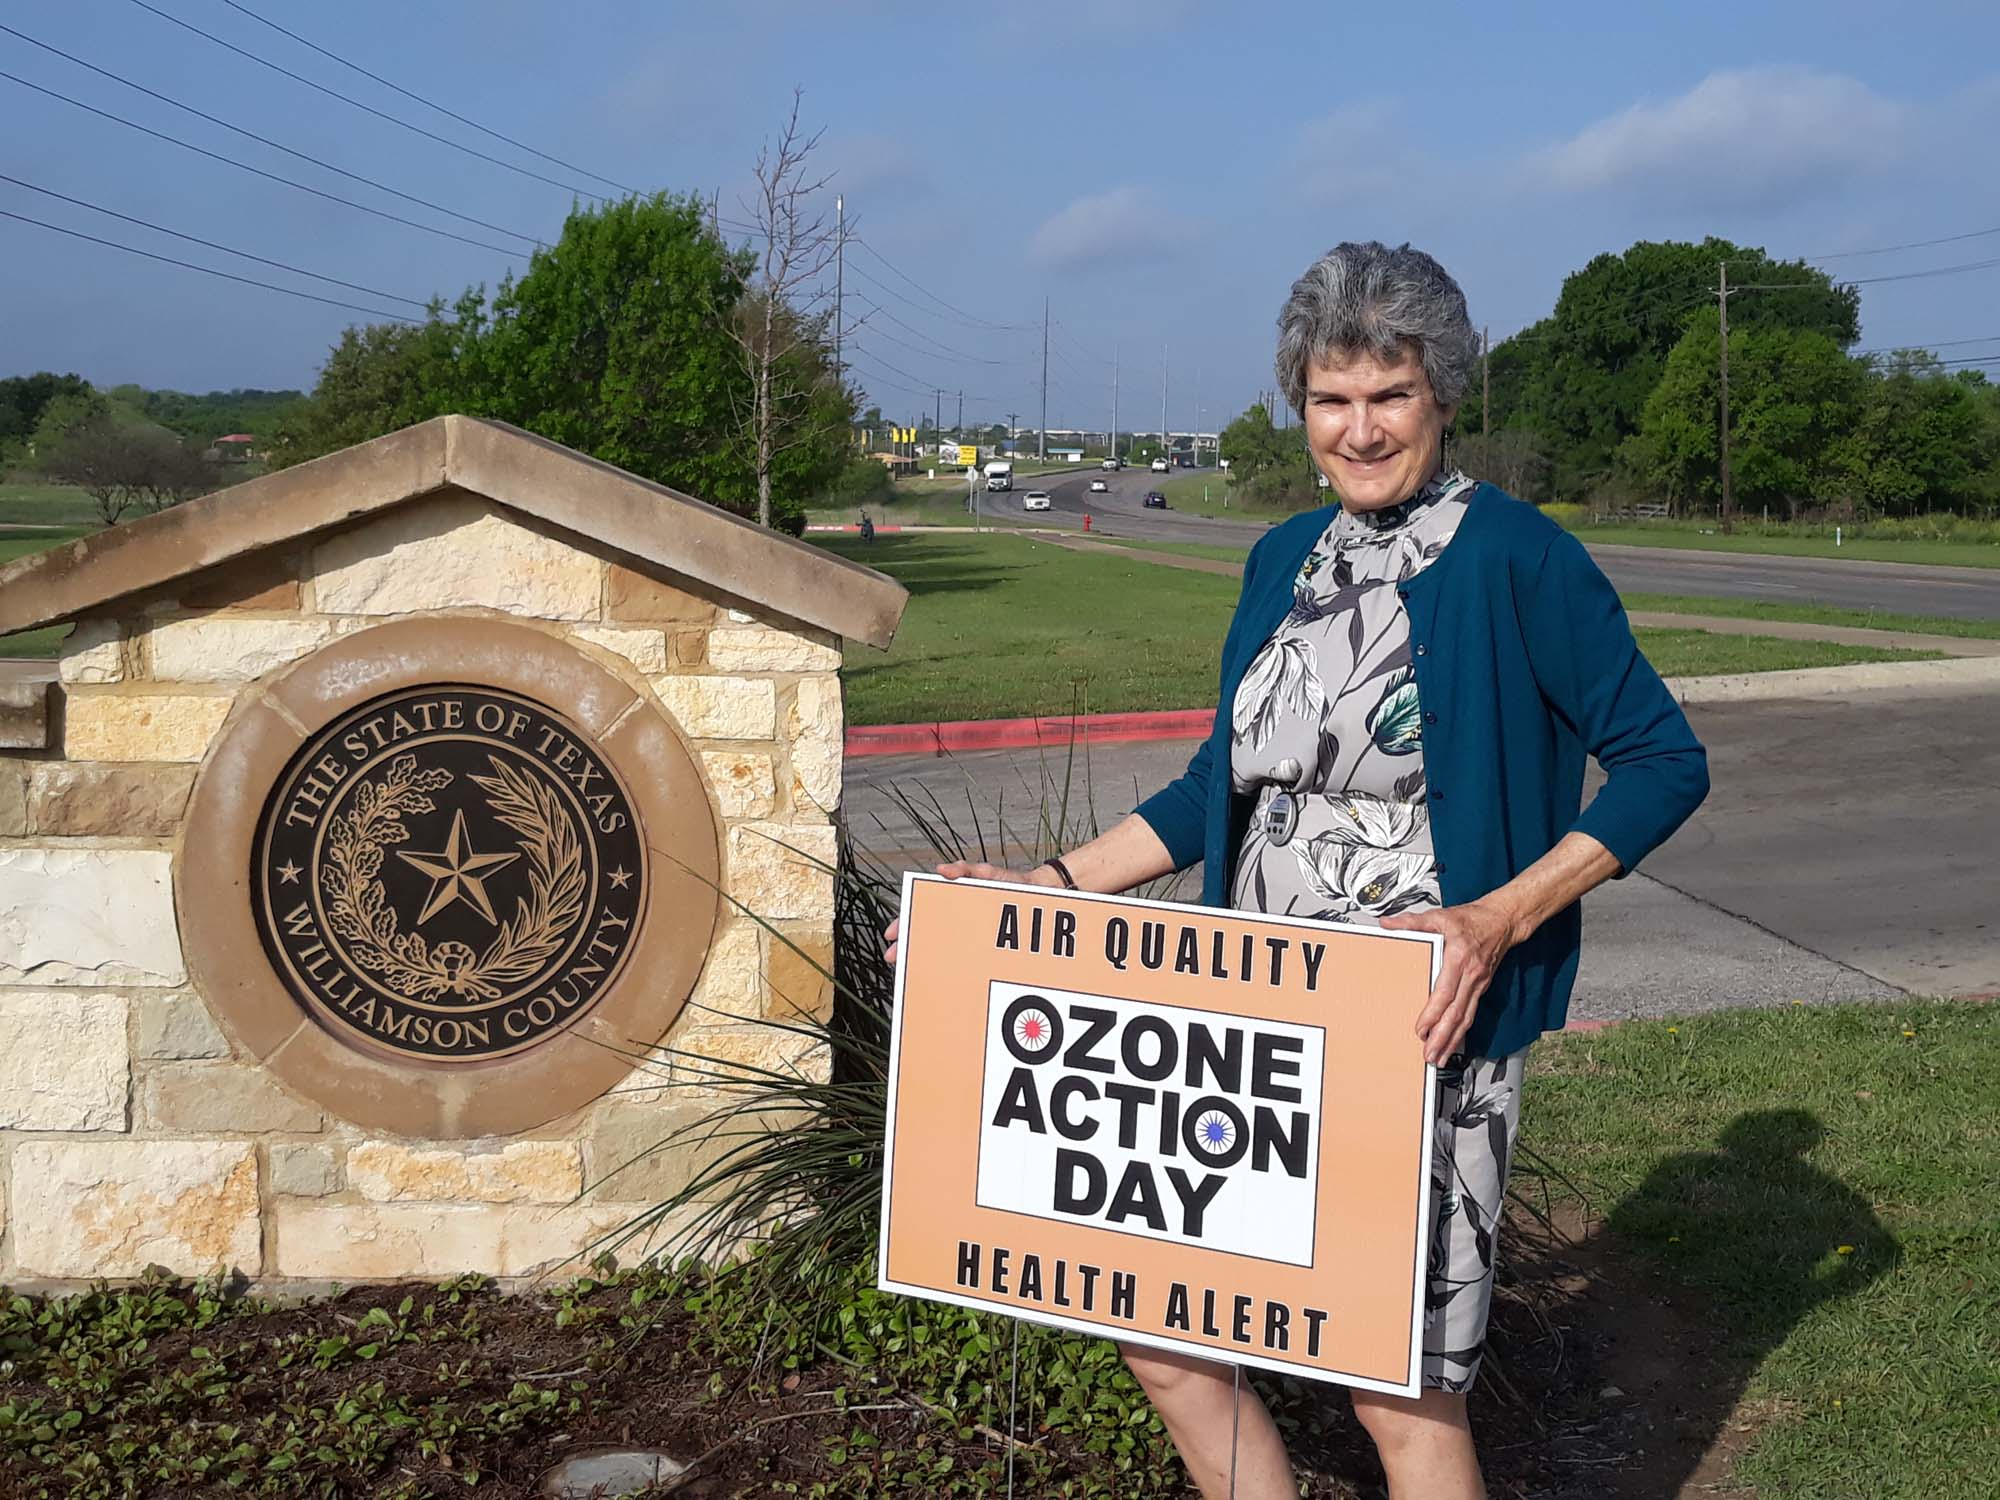 Commissioner Cook is holding her Ozone Action Day sign in front of the entrance to the Williamson County Jester Annex in Round Rock.